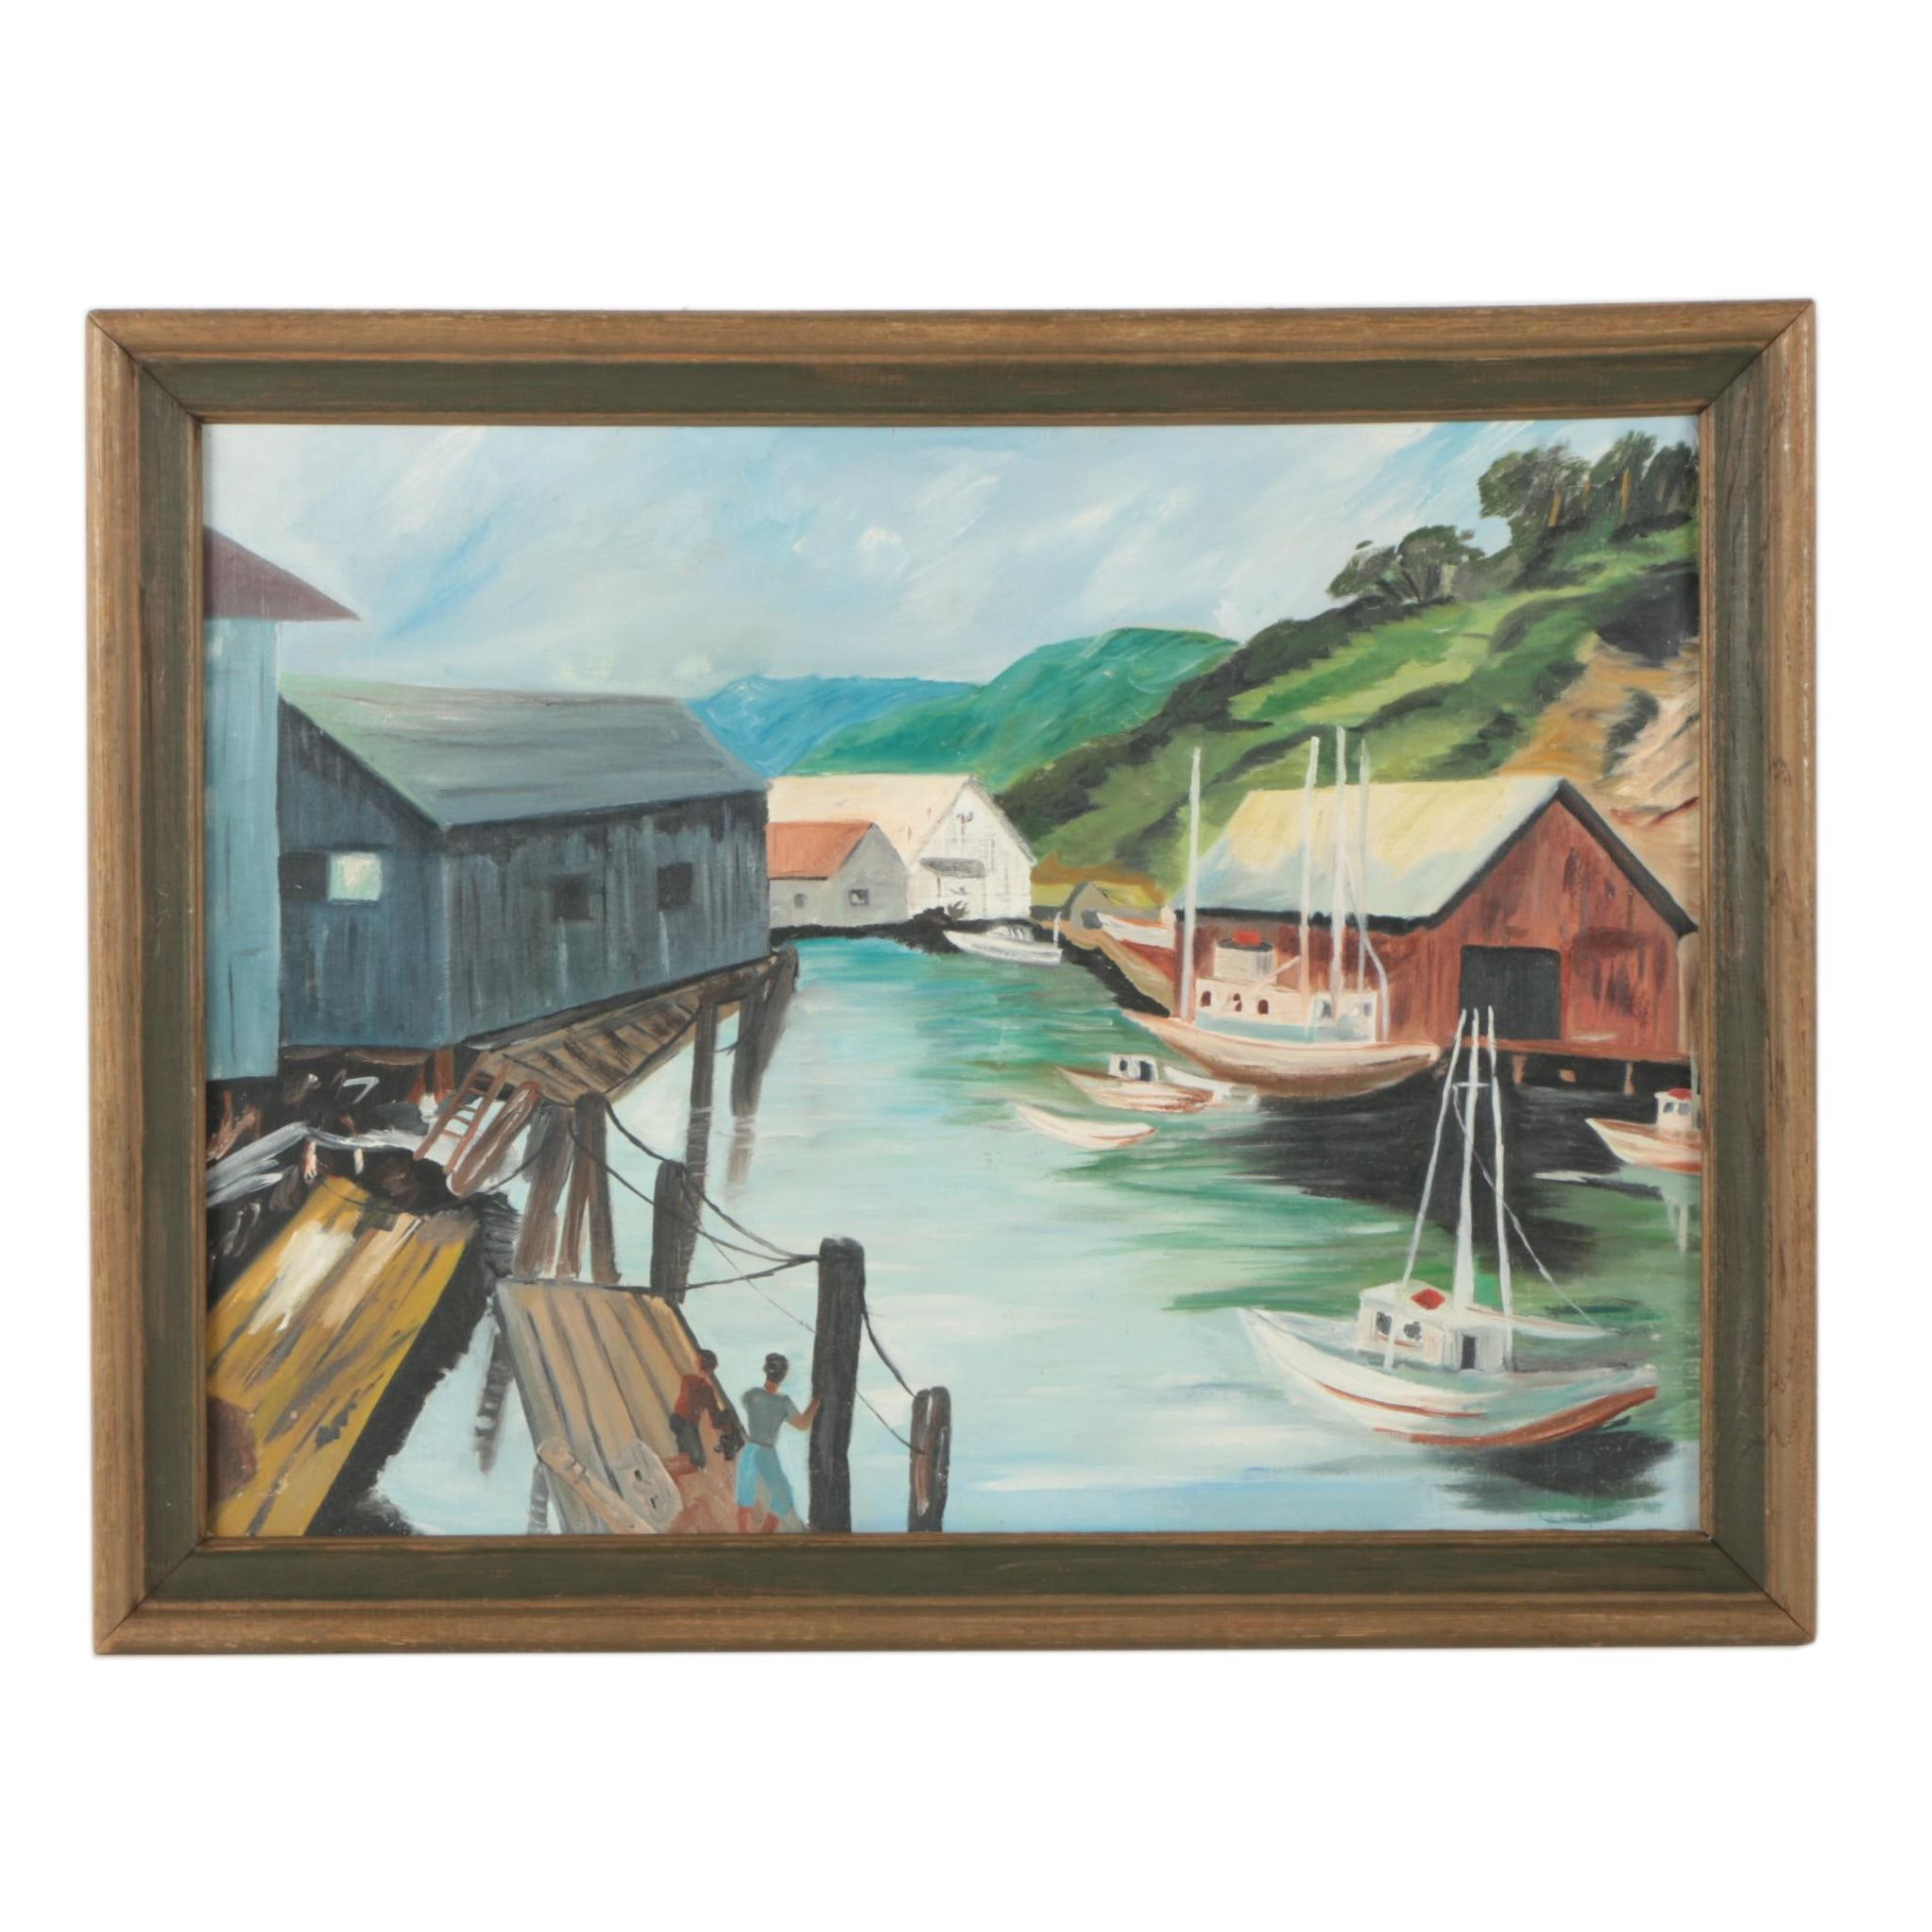 Oil Painting of Boats and Dock Buildings